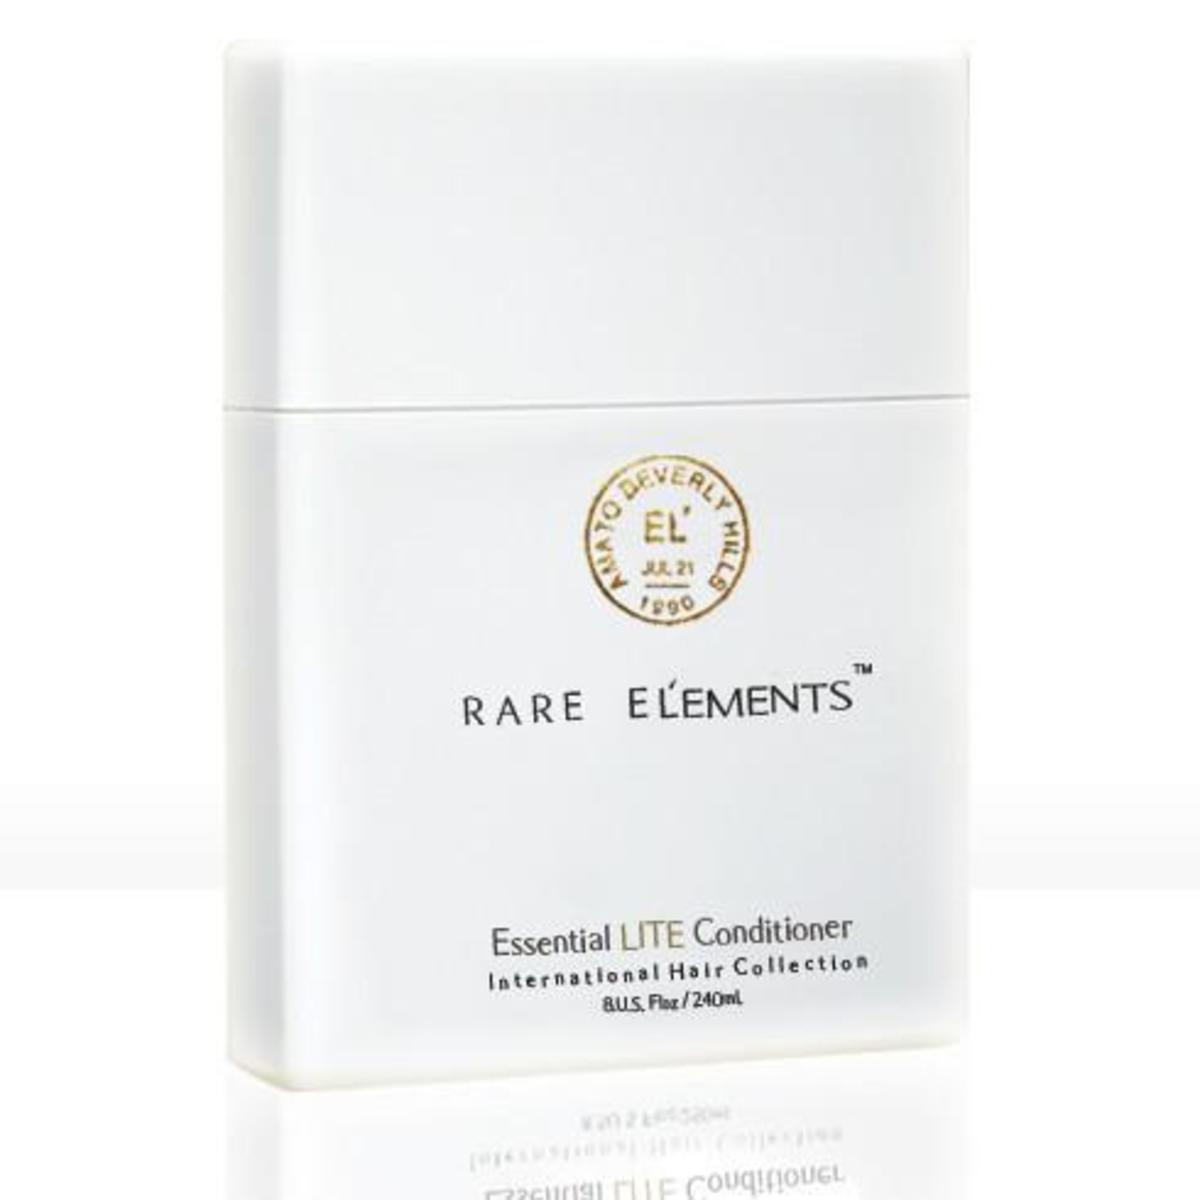 Rare El'ements Essential Lite Conditioner